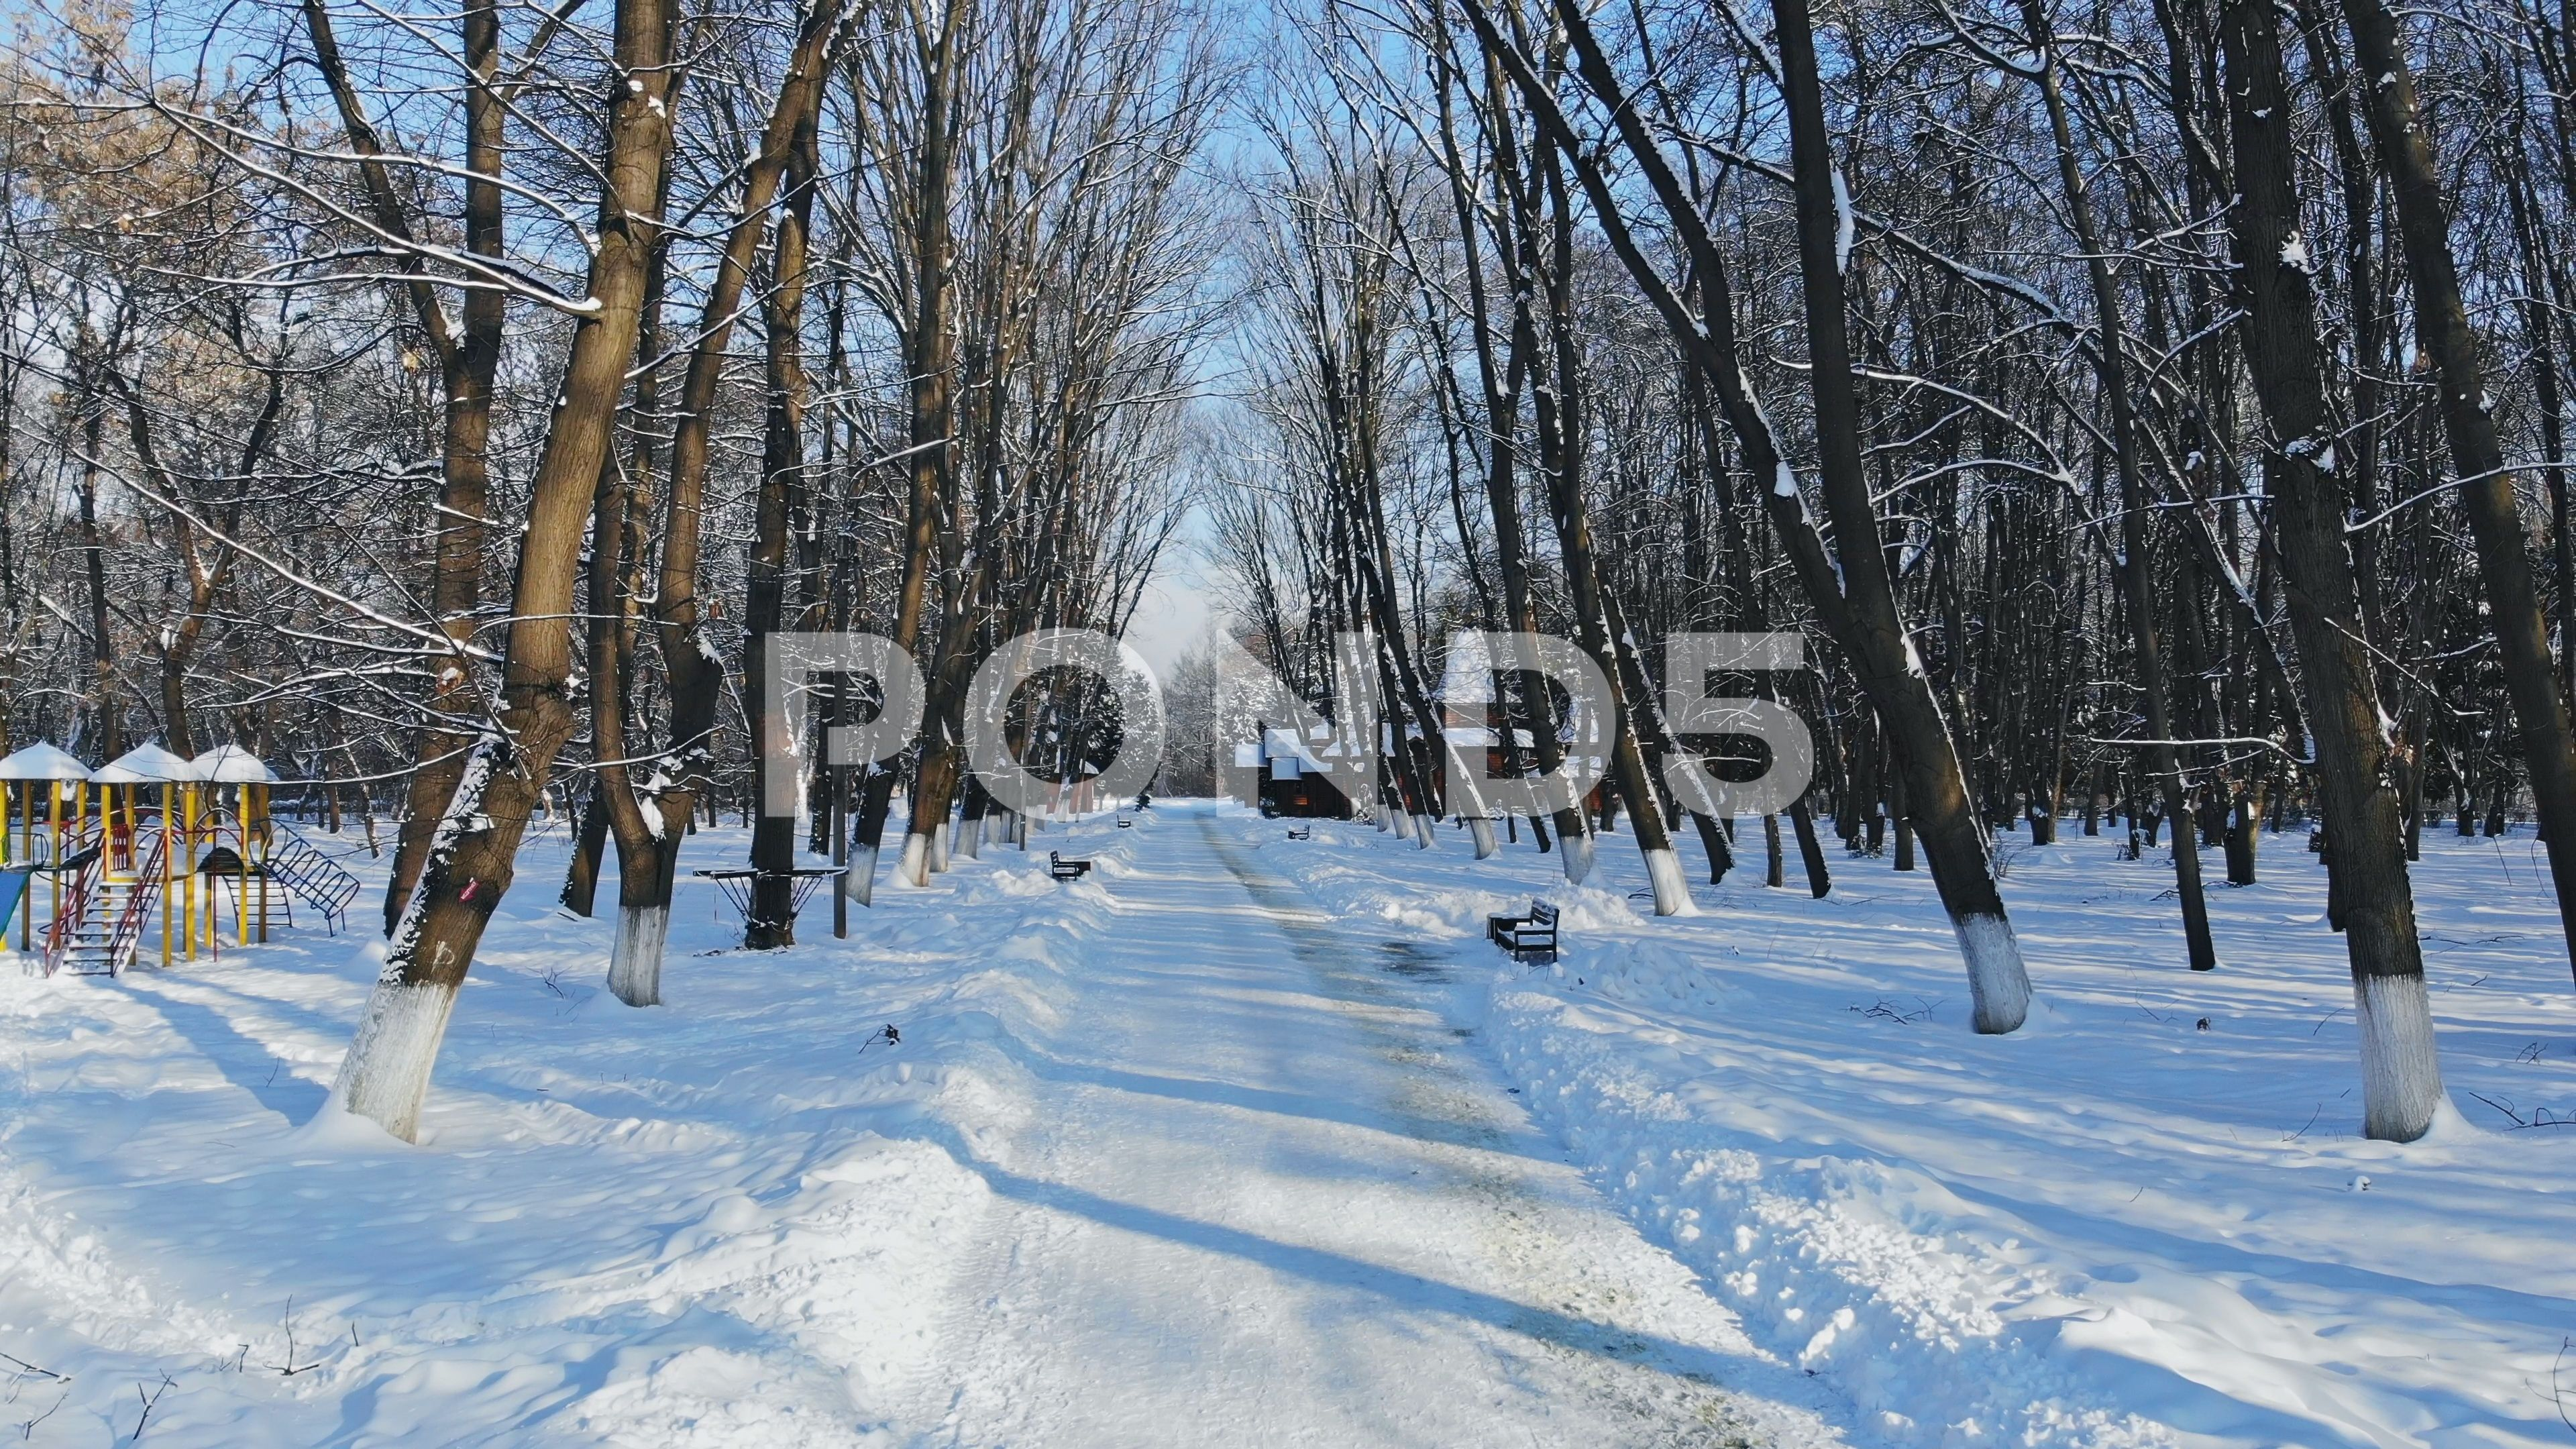 Snowy Road In Forest Nature Landscape At Cold Day In Winter Forest Stock Footage Ad Nature Landscape Forest Snowy Winter Forest Landscape Forest